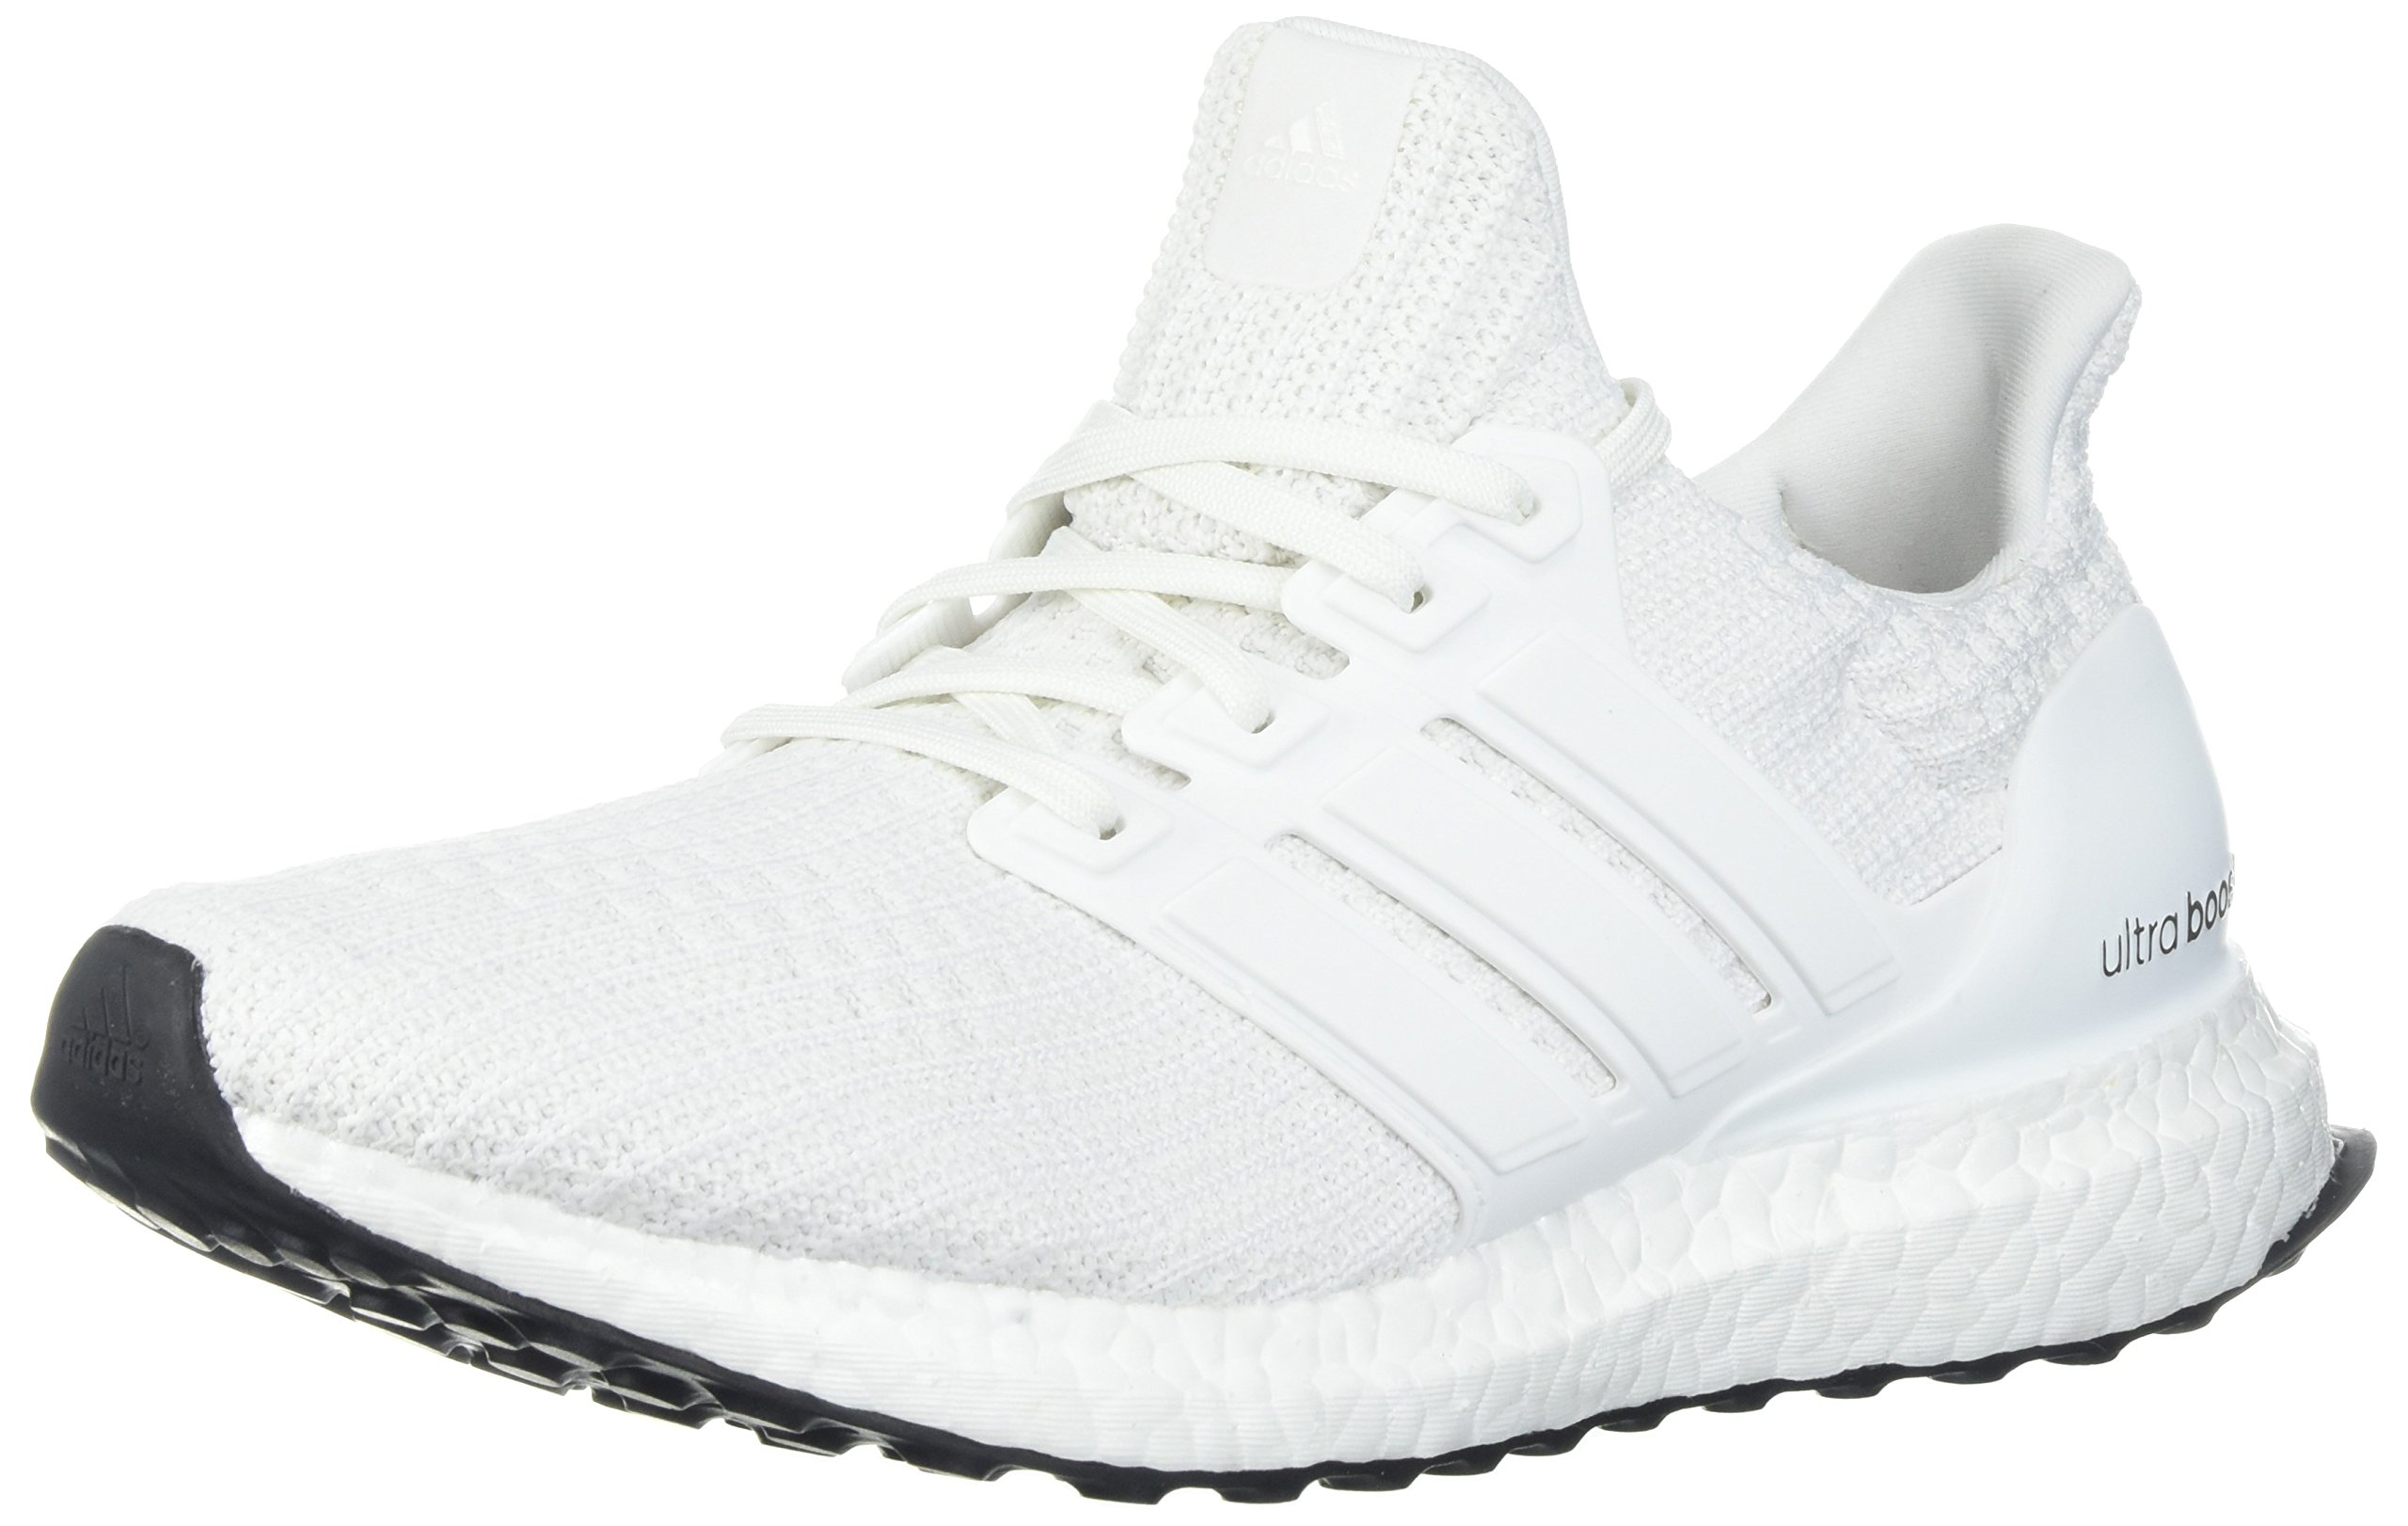 Adidas Men's Ultraboost Road Running Shoe, White/White/White, 9.5 M US